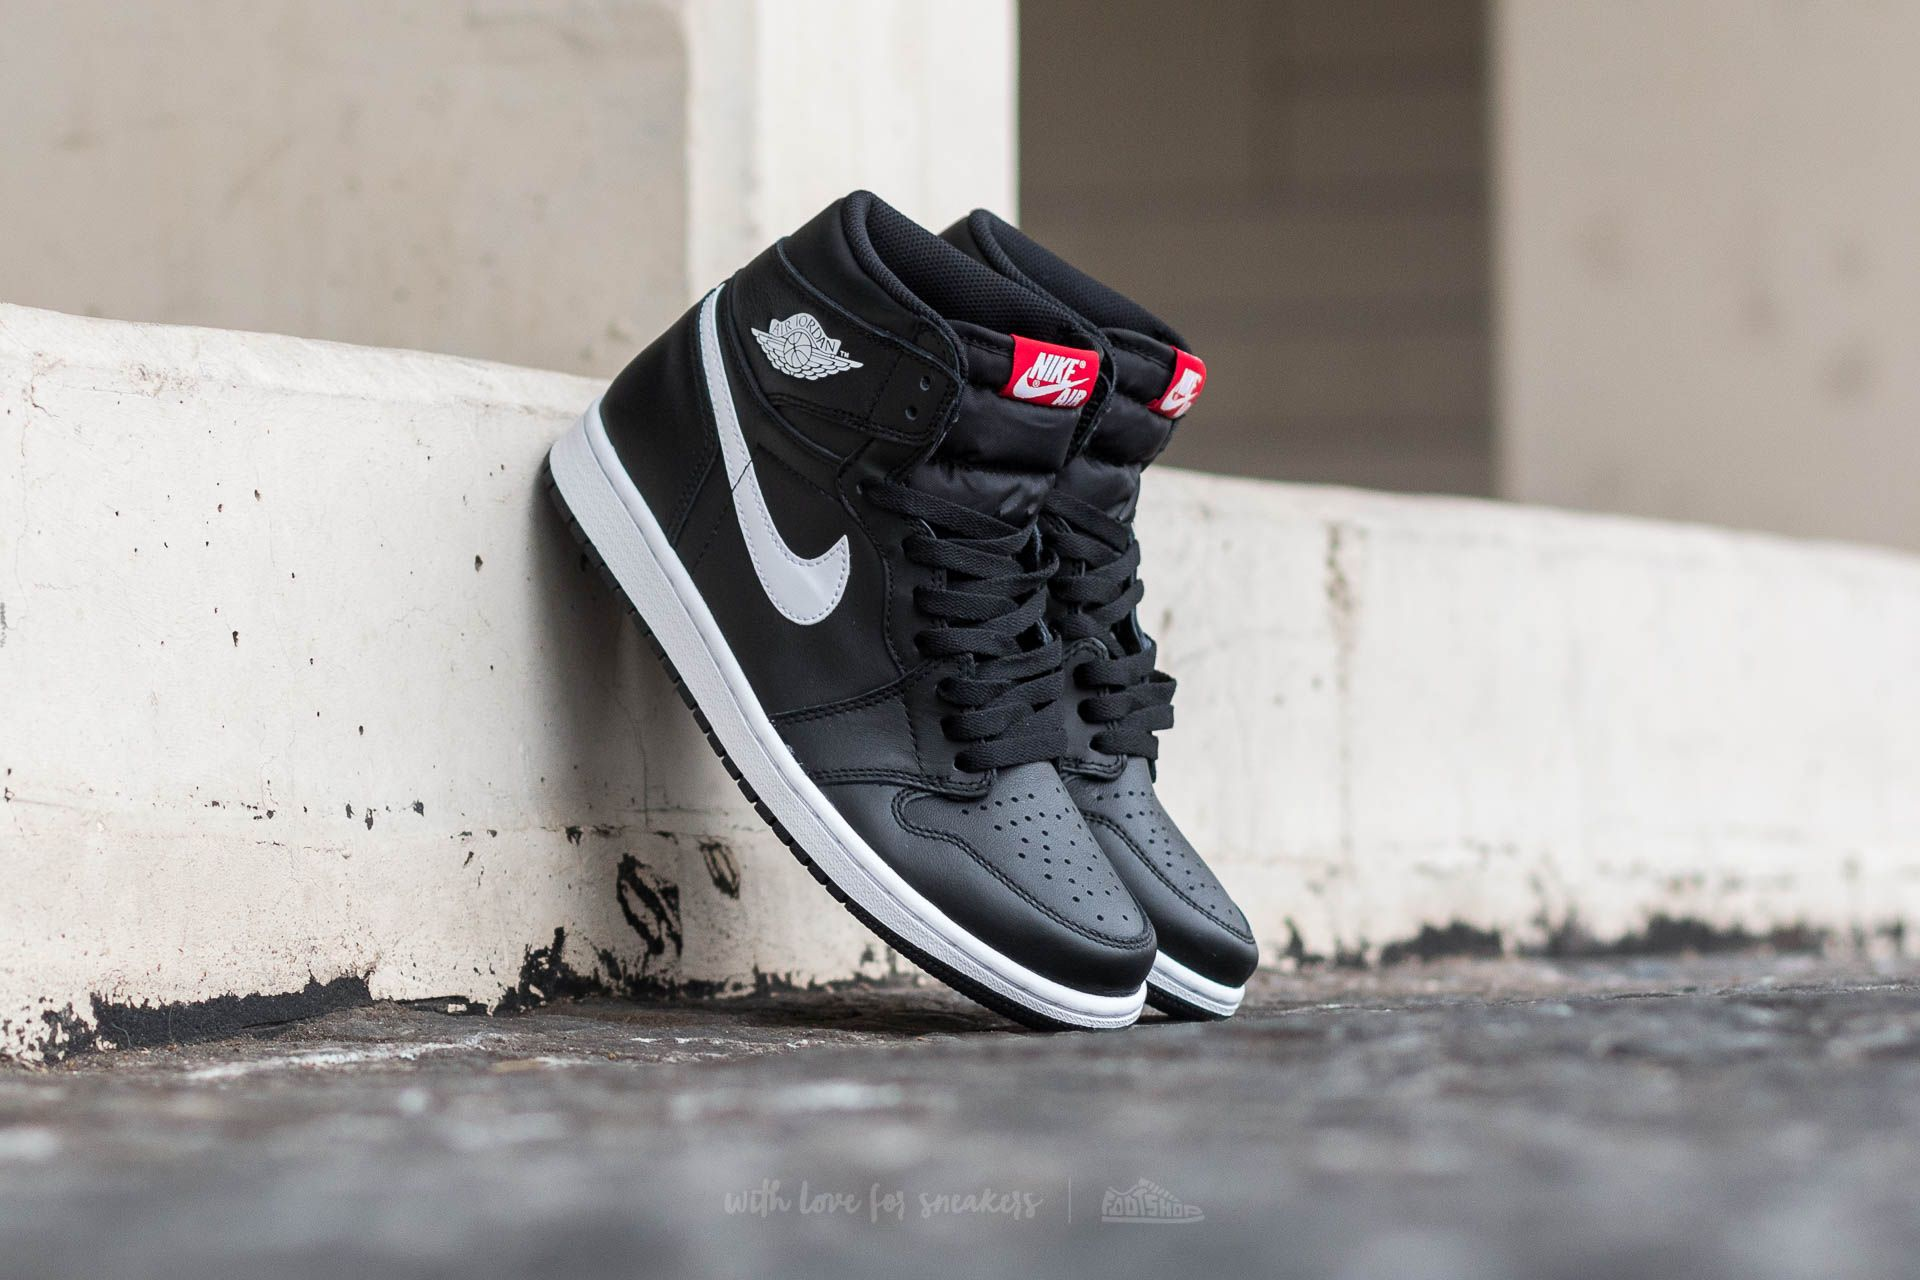 Air Jordan 1 Retro High OG Black/ White-Black